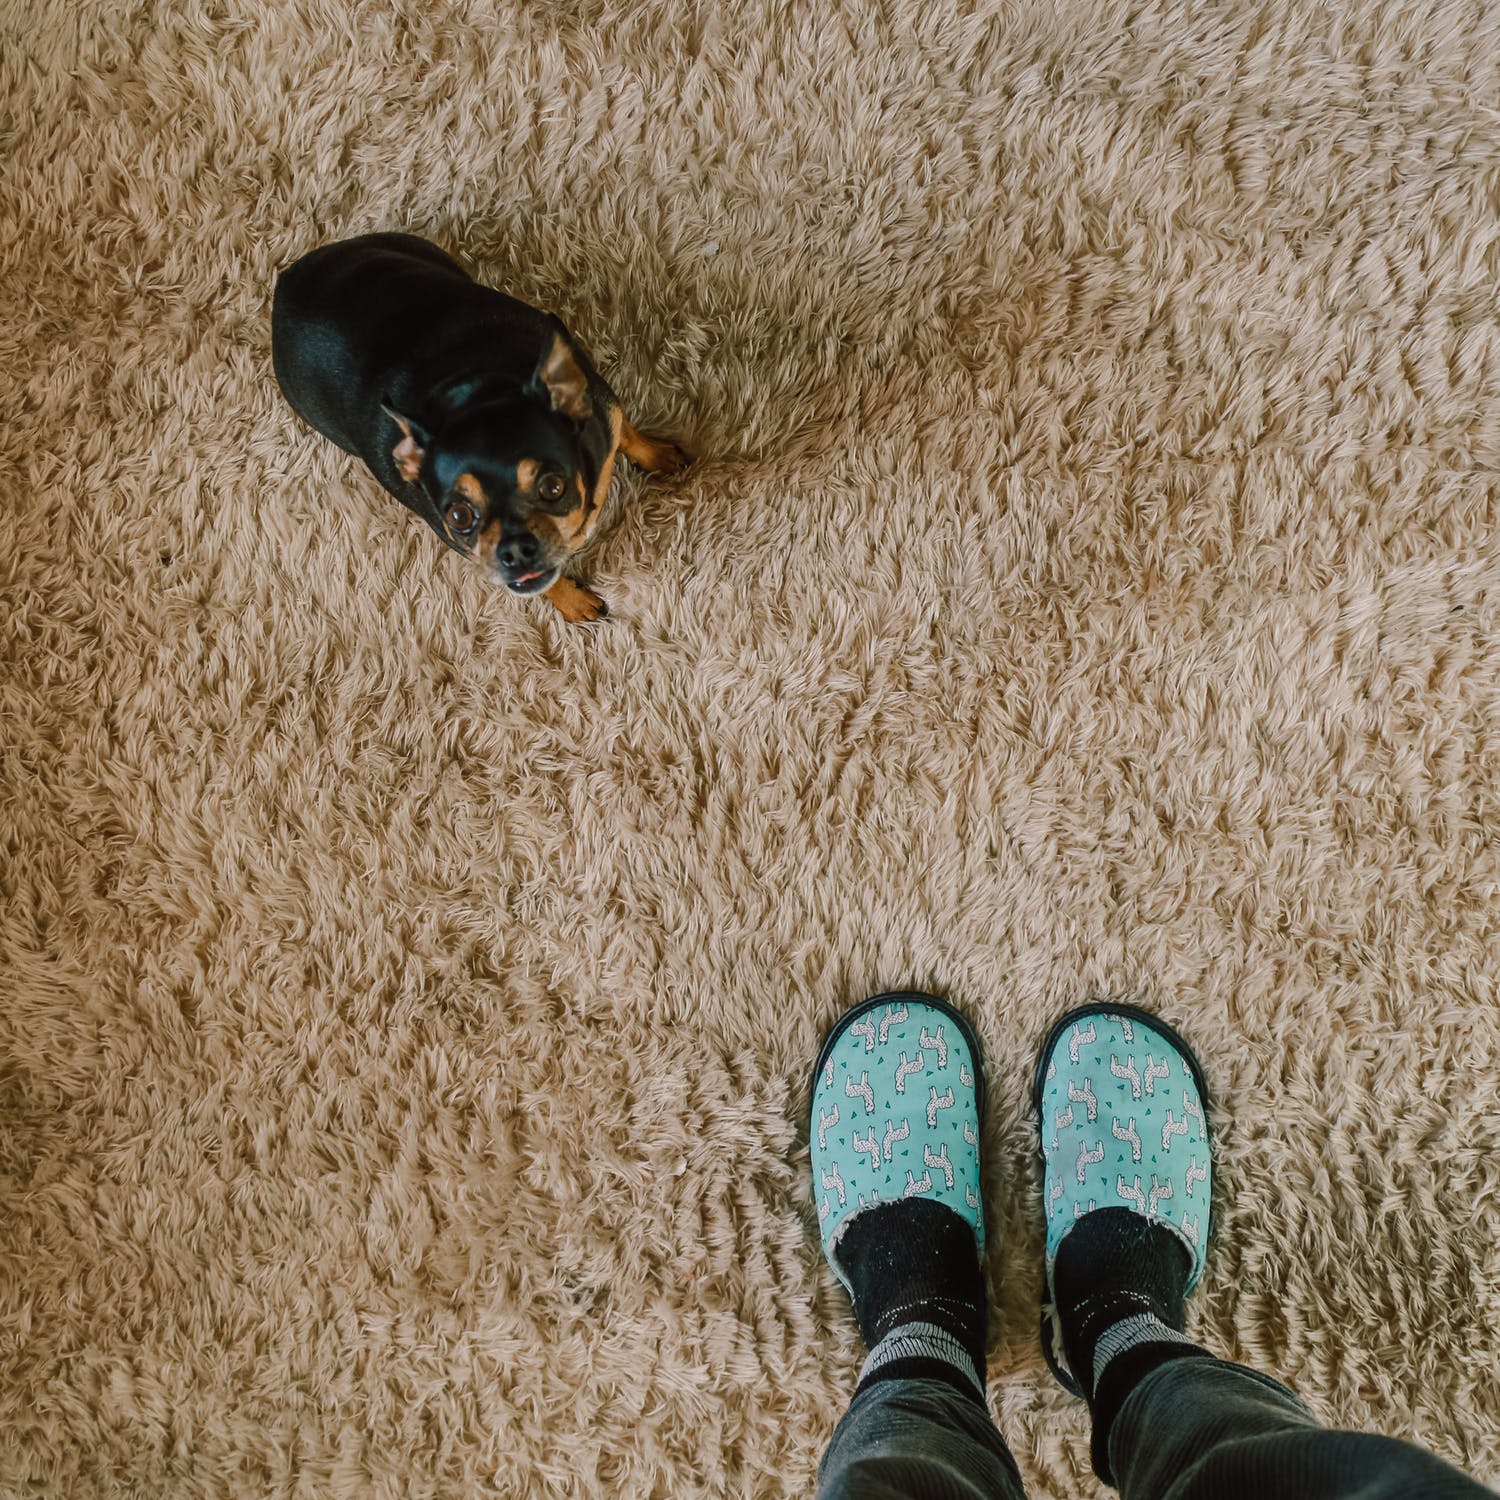 A STEP-BY-STEP GUIDE TO CARPET REMOVAL